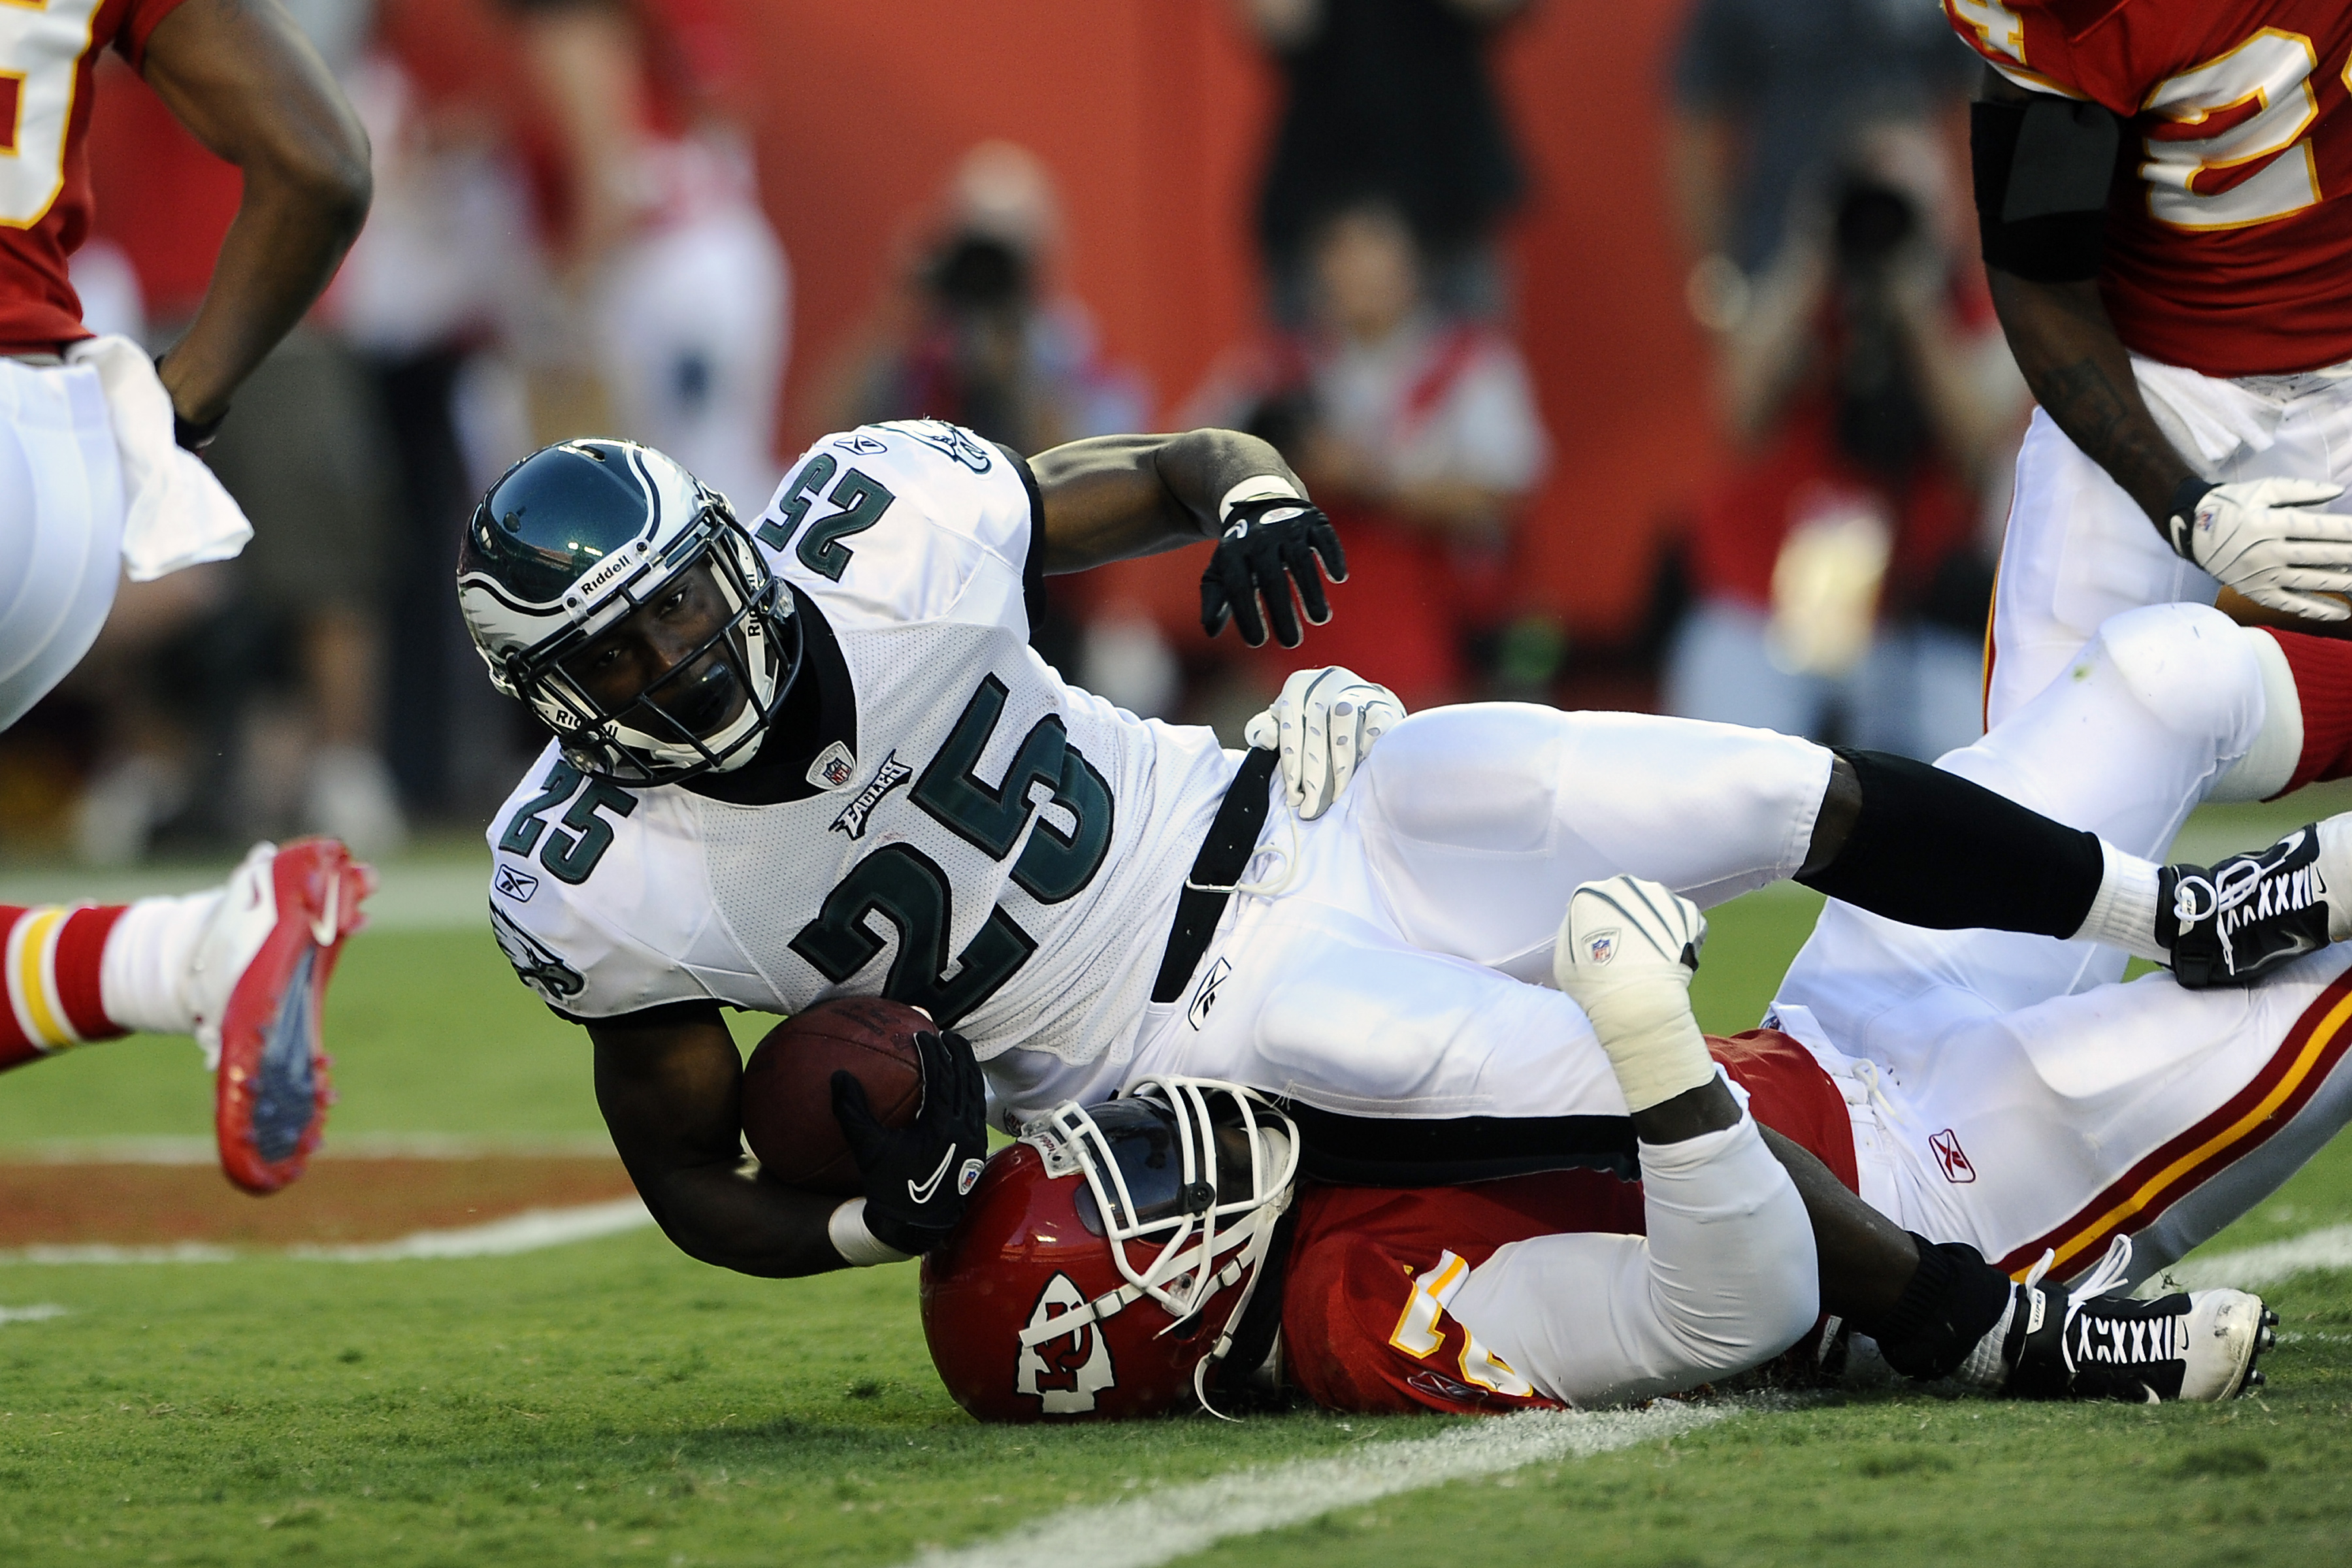 KANSAS CITY, MO - AUGUST 27: LeSean McCoy #25 of the Philadelphia Eagles dives into the end zone to score a touchdown during a preseason game against the Kansas City Chiefs at Arrowhead Stadium on August 27, 2010 in Kansas City, Missouri.  (Photo by G. Ne